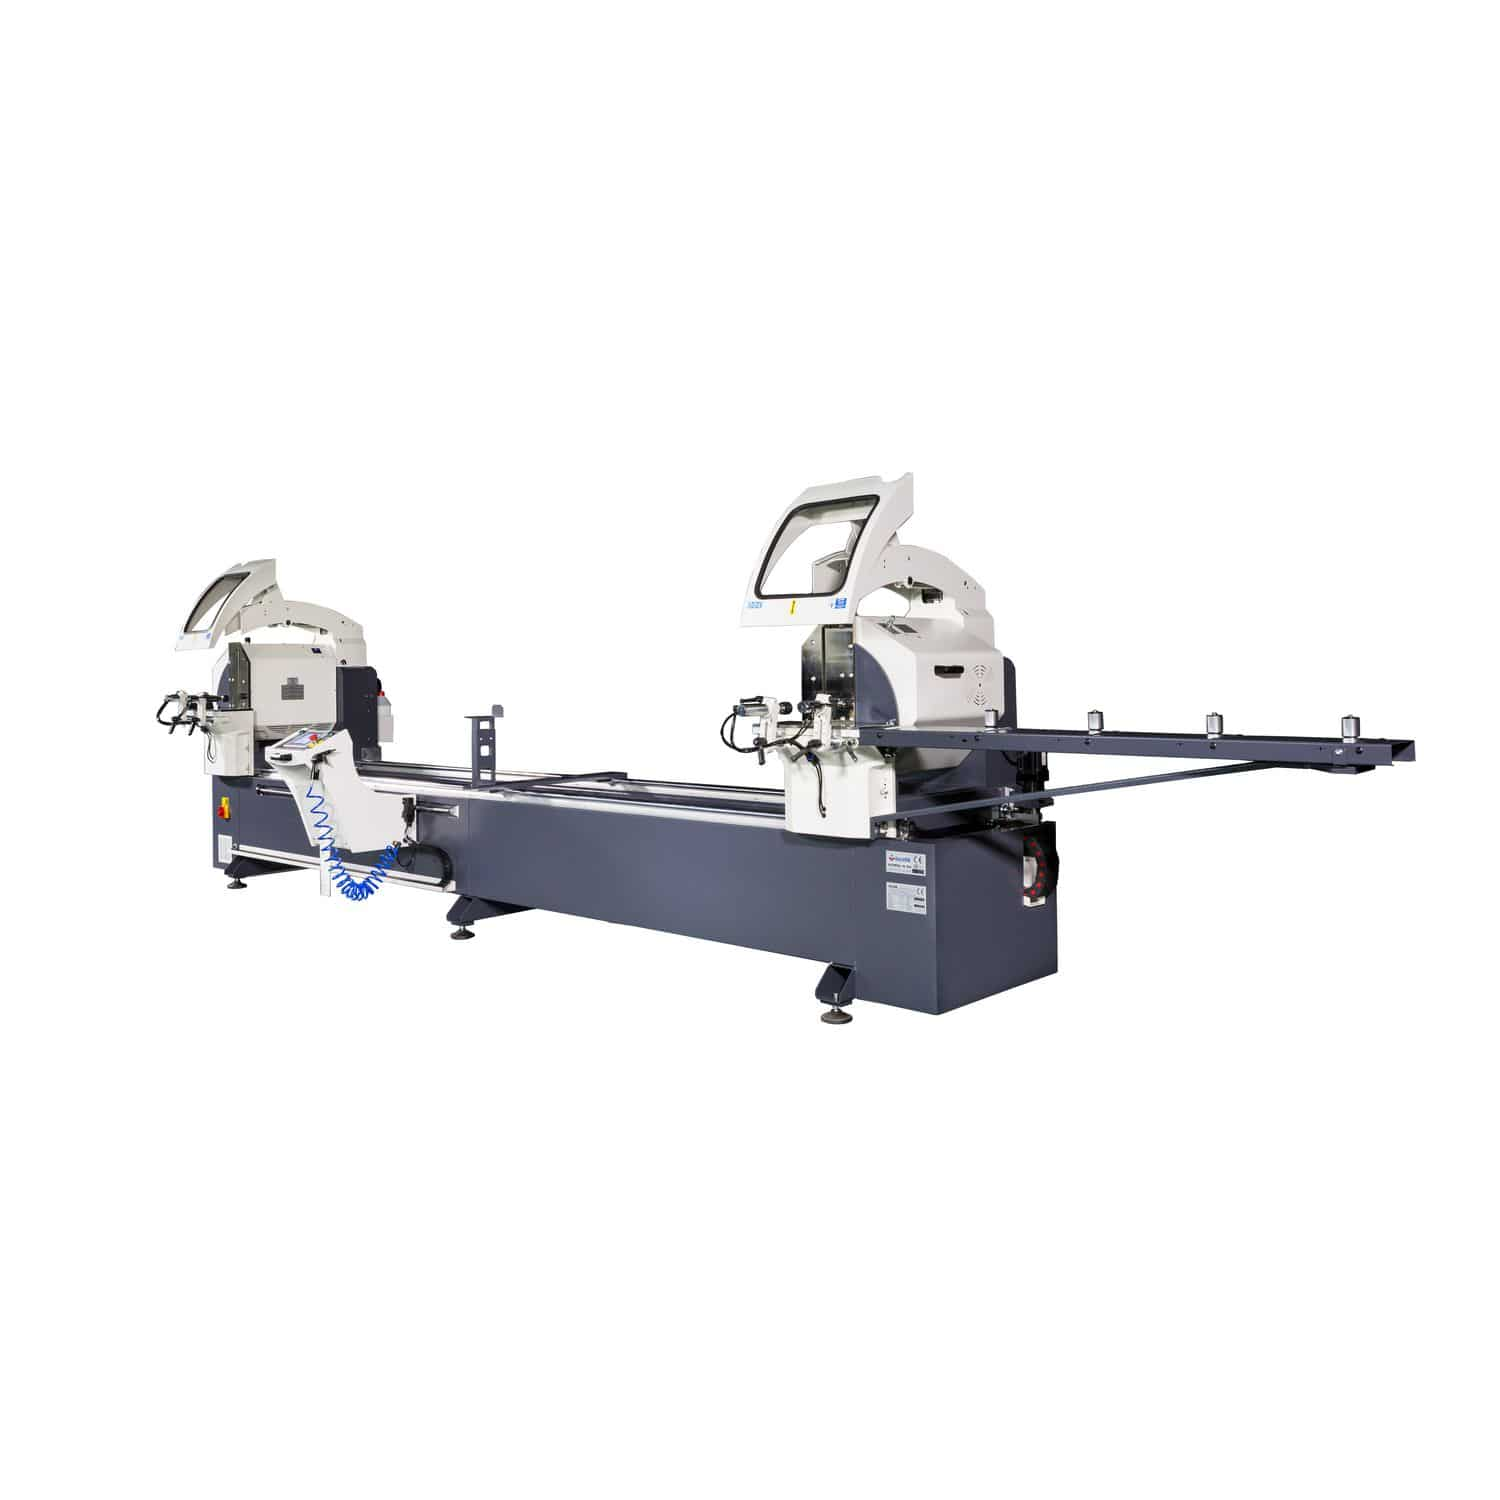 Metal Double Head Miter Saw For Plastics For Wood Gemini Iv